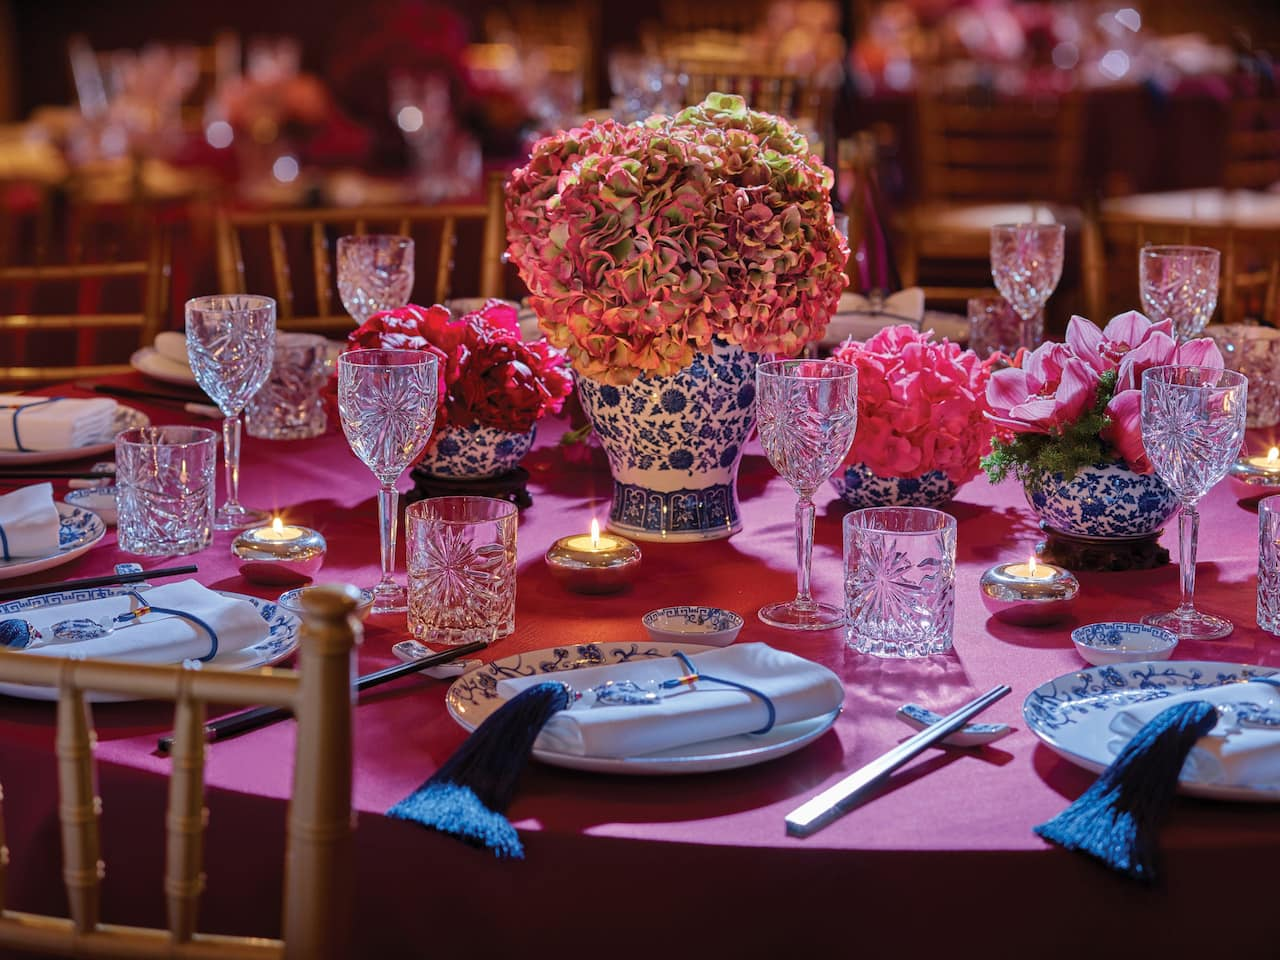 Shanghainese Banquet Setup with Red Table Cloth